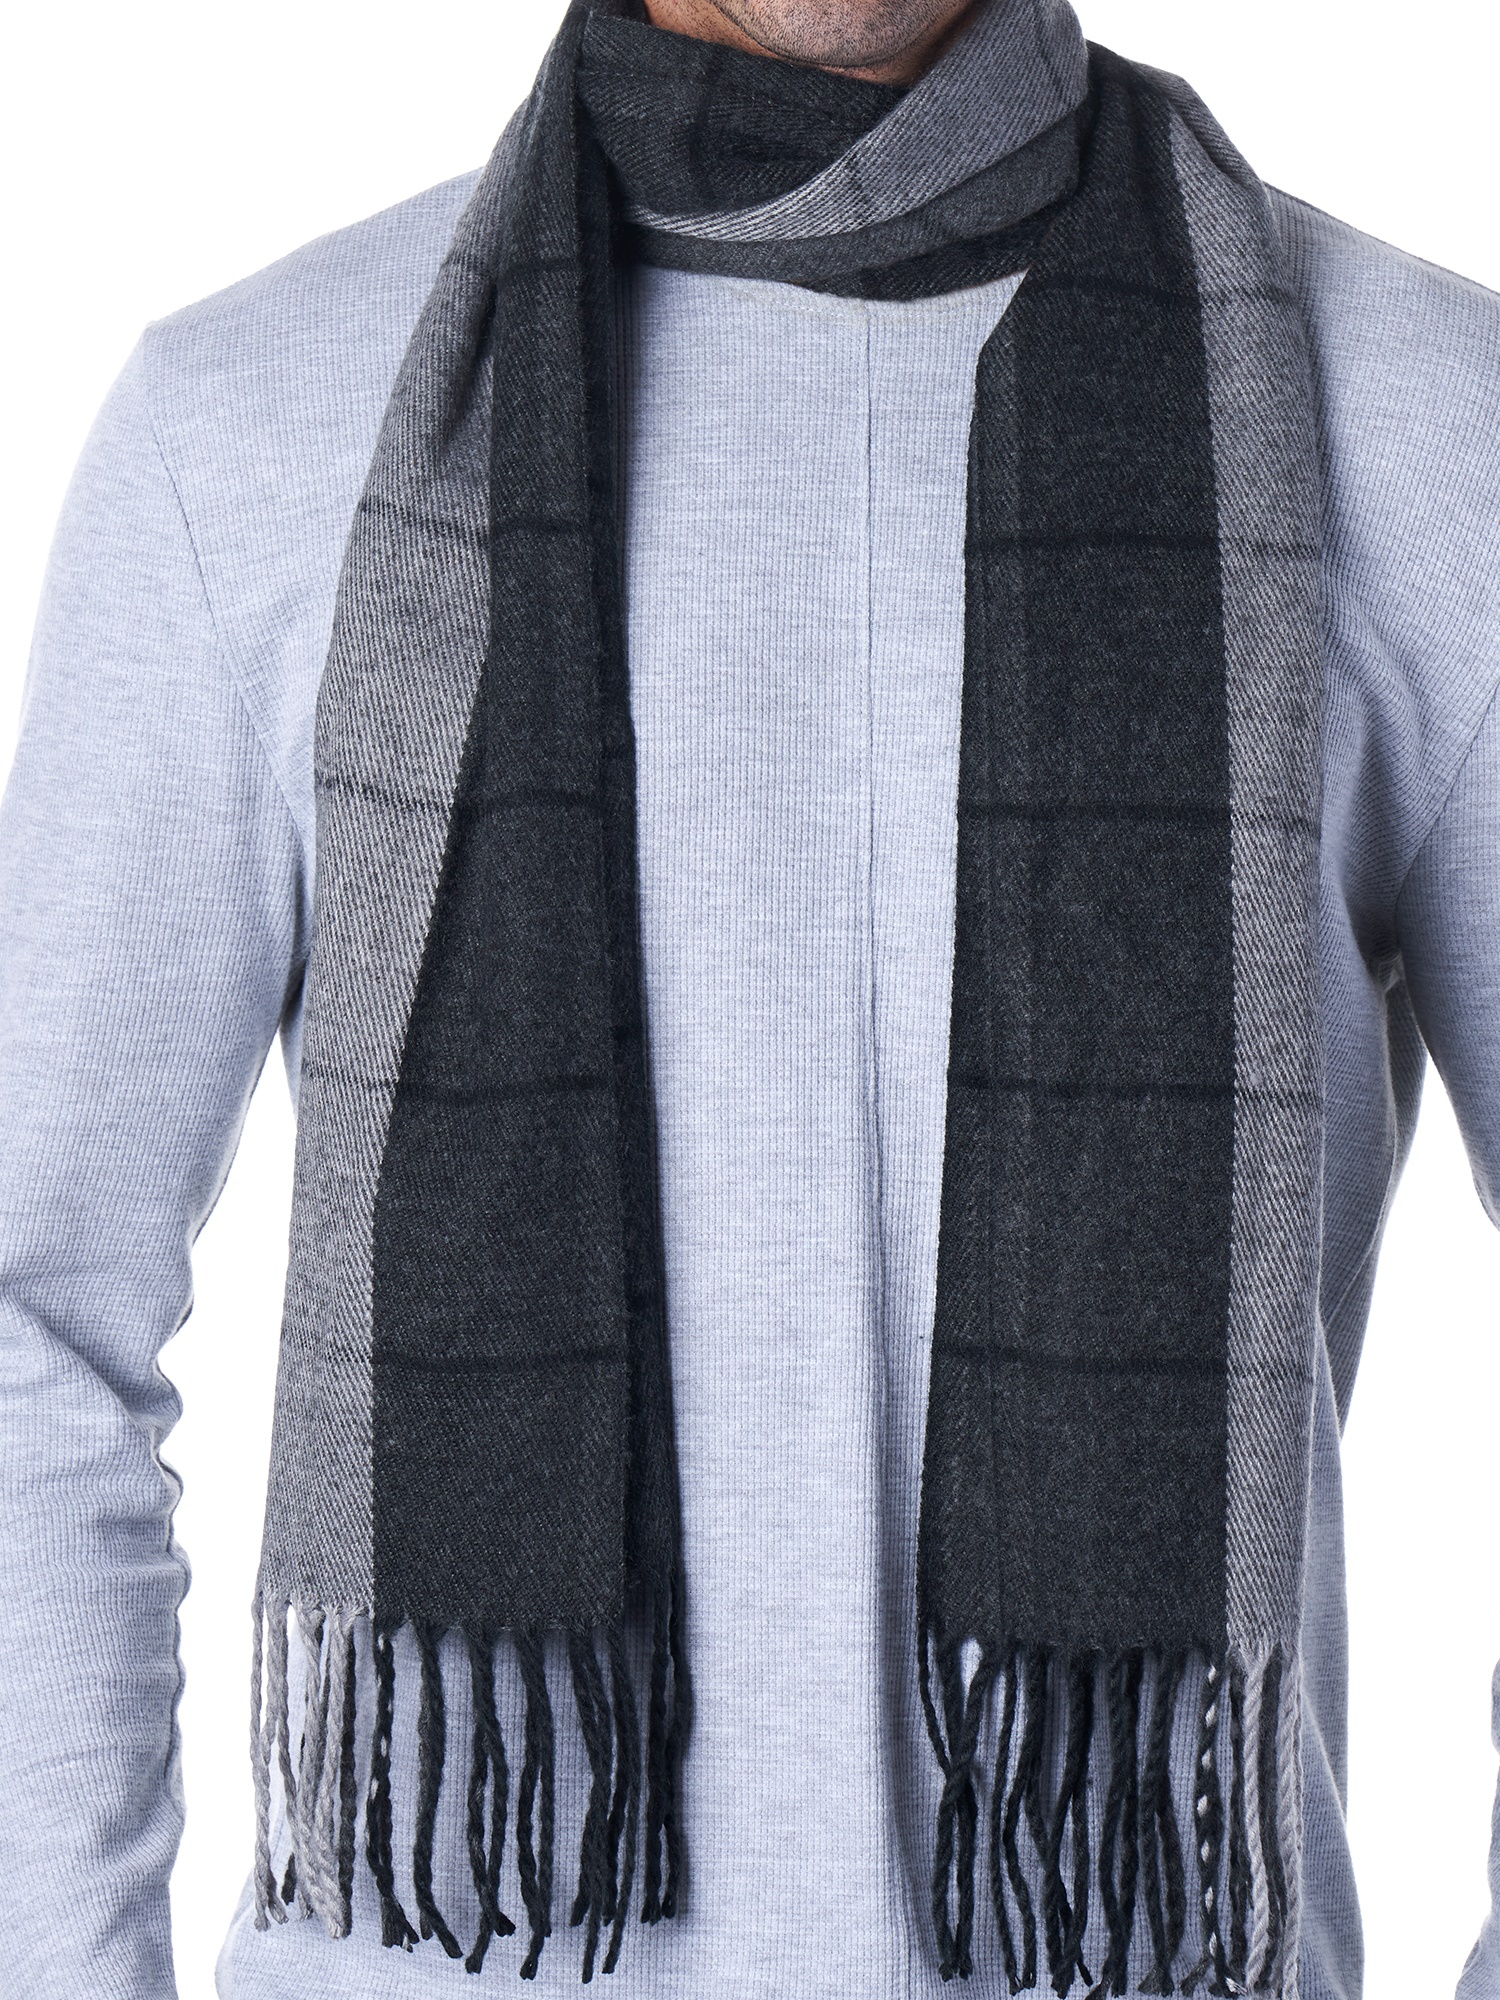 Hammer-Anvil-Mens-Plaid-Striped-Scarf-Womens-Winter-Scarves-Cashmere-Soft-Feel thumbnail 28